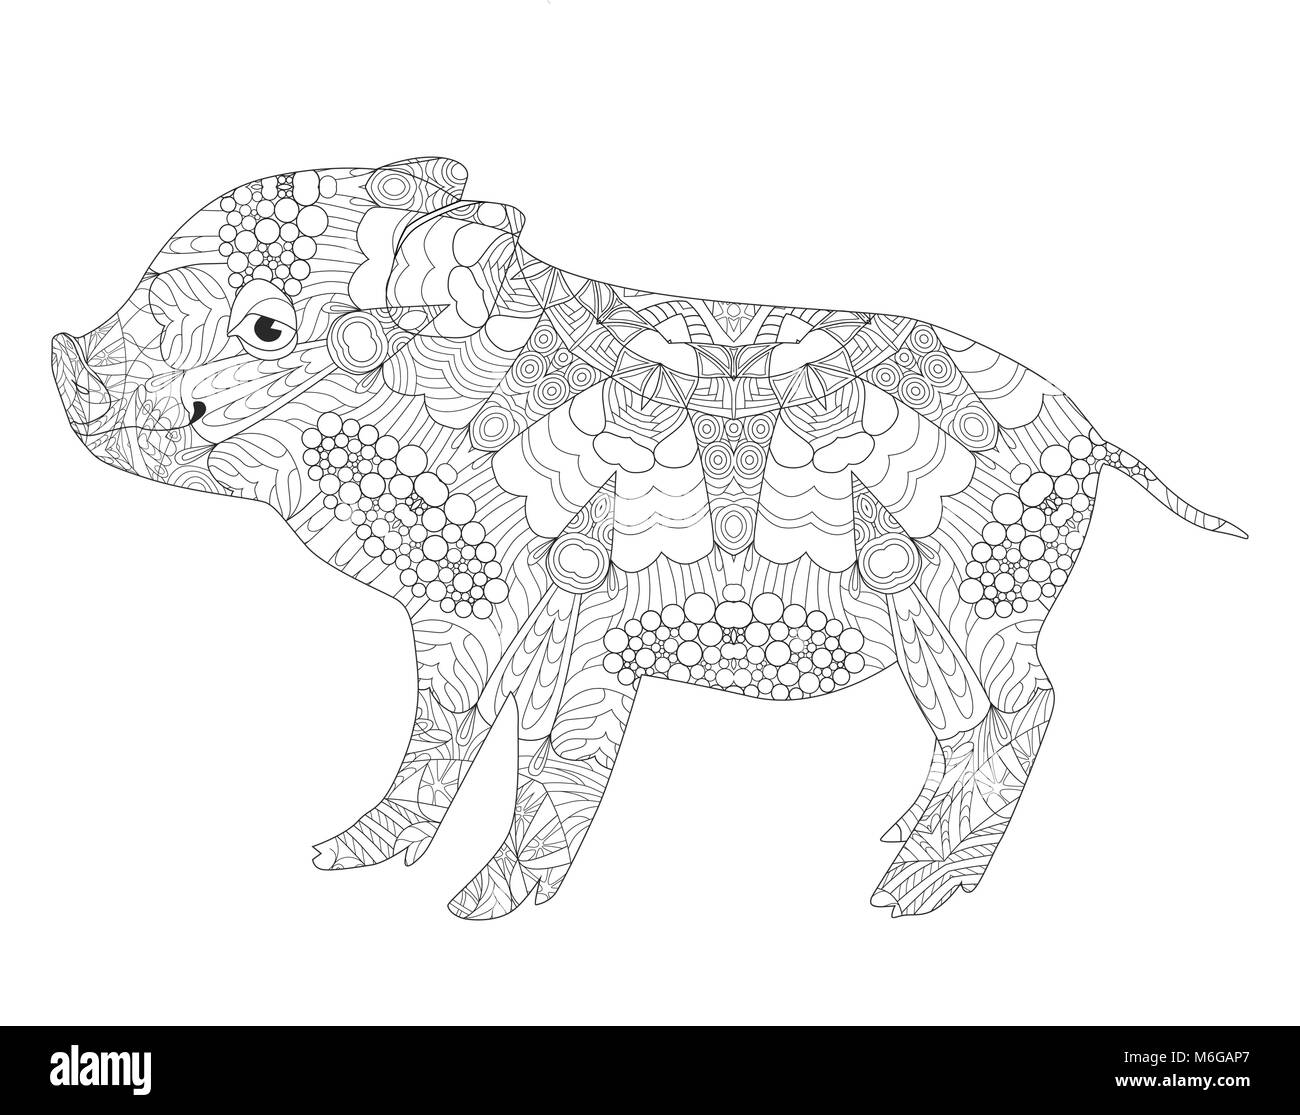 Zentangle Illustration With Pig Zen Tangle Or Doodle Piglet Coloring Book Domestic Animal